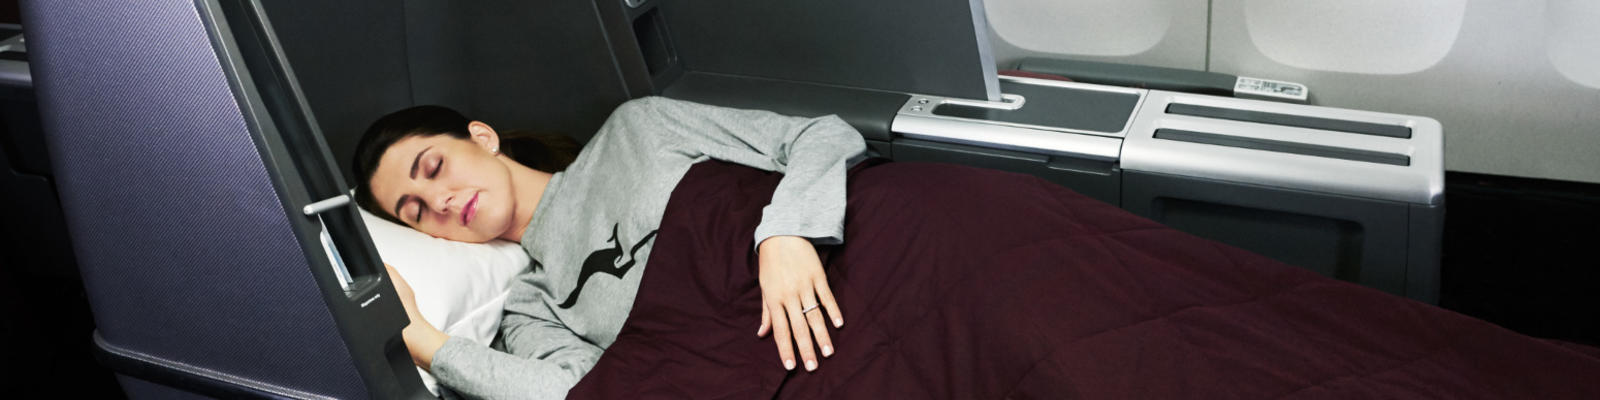 A woman sleeping on her Qantas Business Class lay flat seat